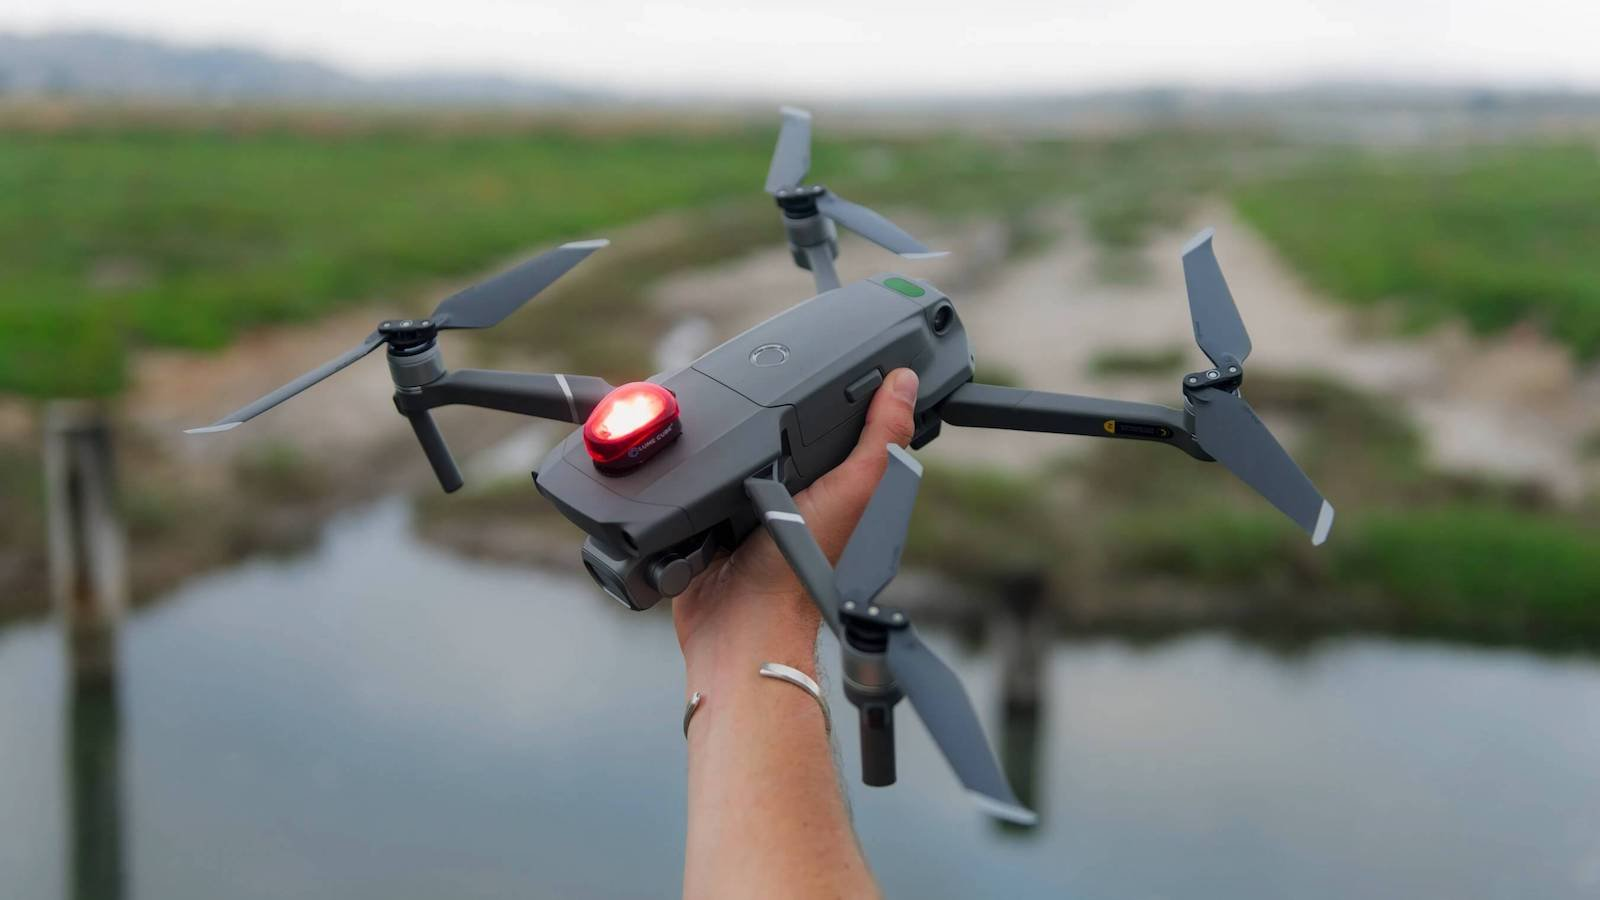 Best drones and accessories